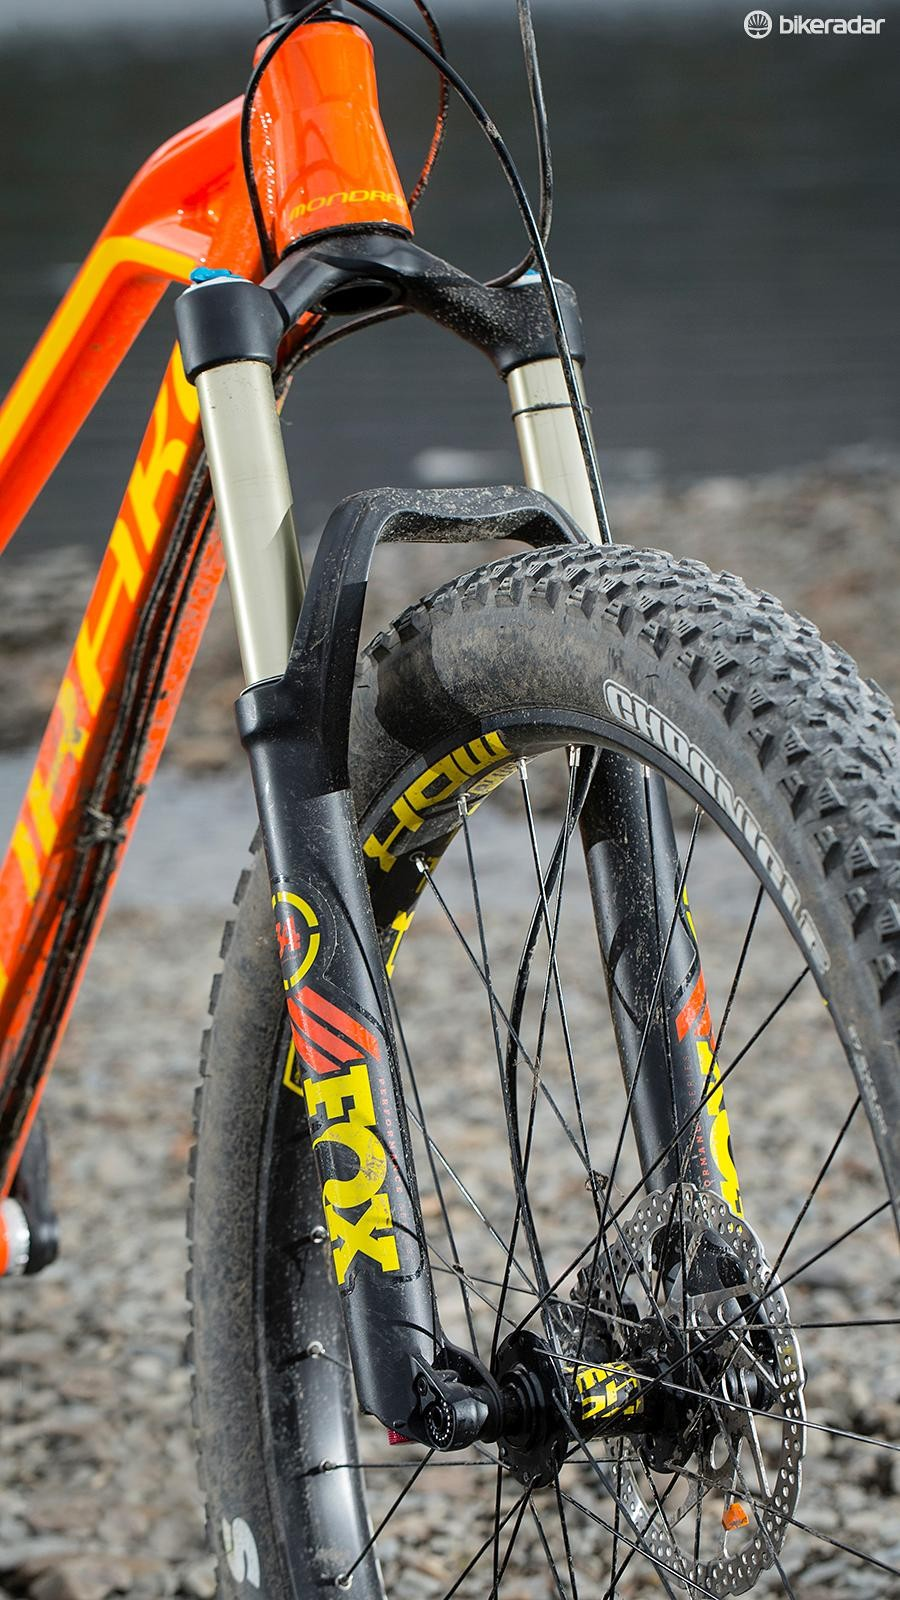 Push hard and you'll feel some twang in the Fox 34 fork